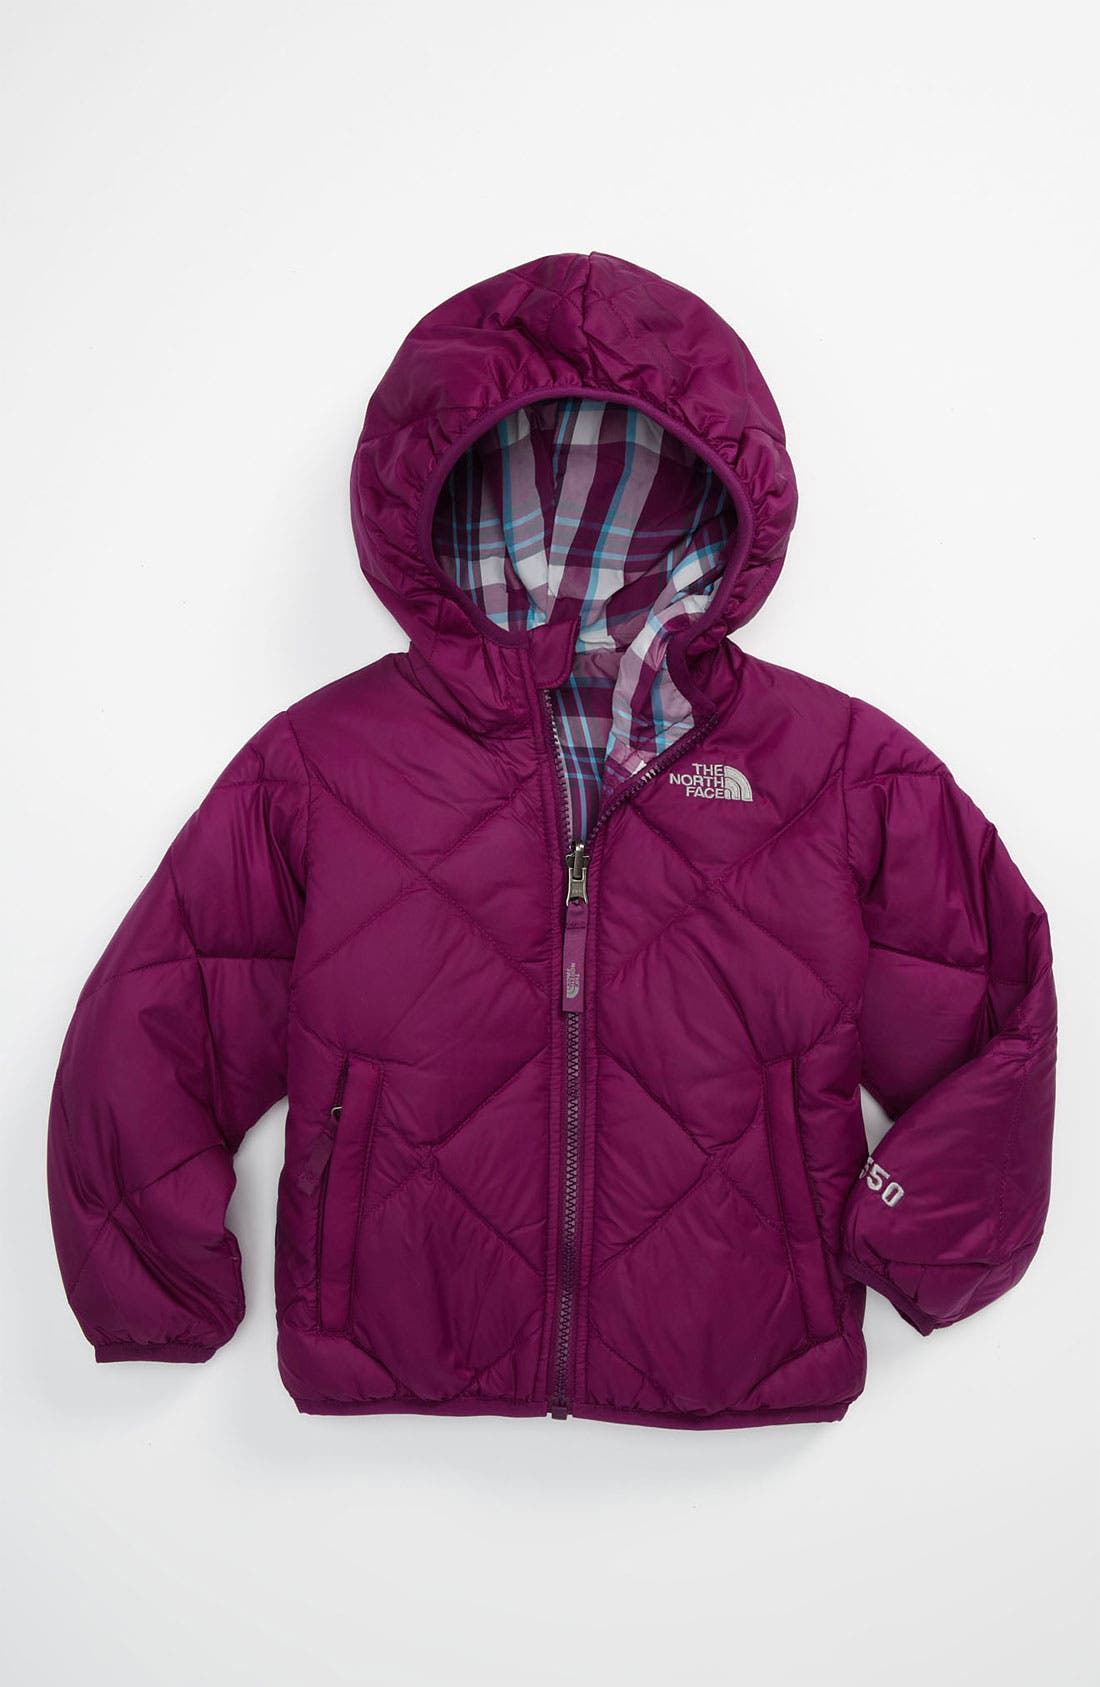 Alternate Image 1 Selected - The North Face 'Moondoggy' Reversible Down Jacket (Toddler)